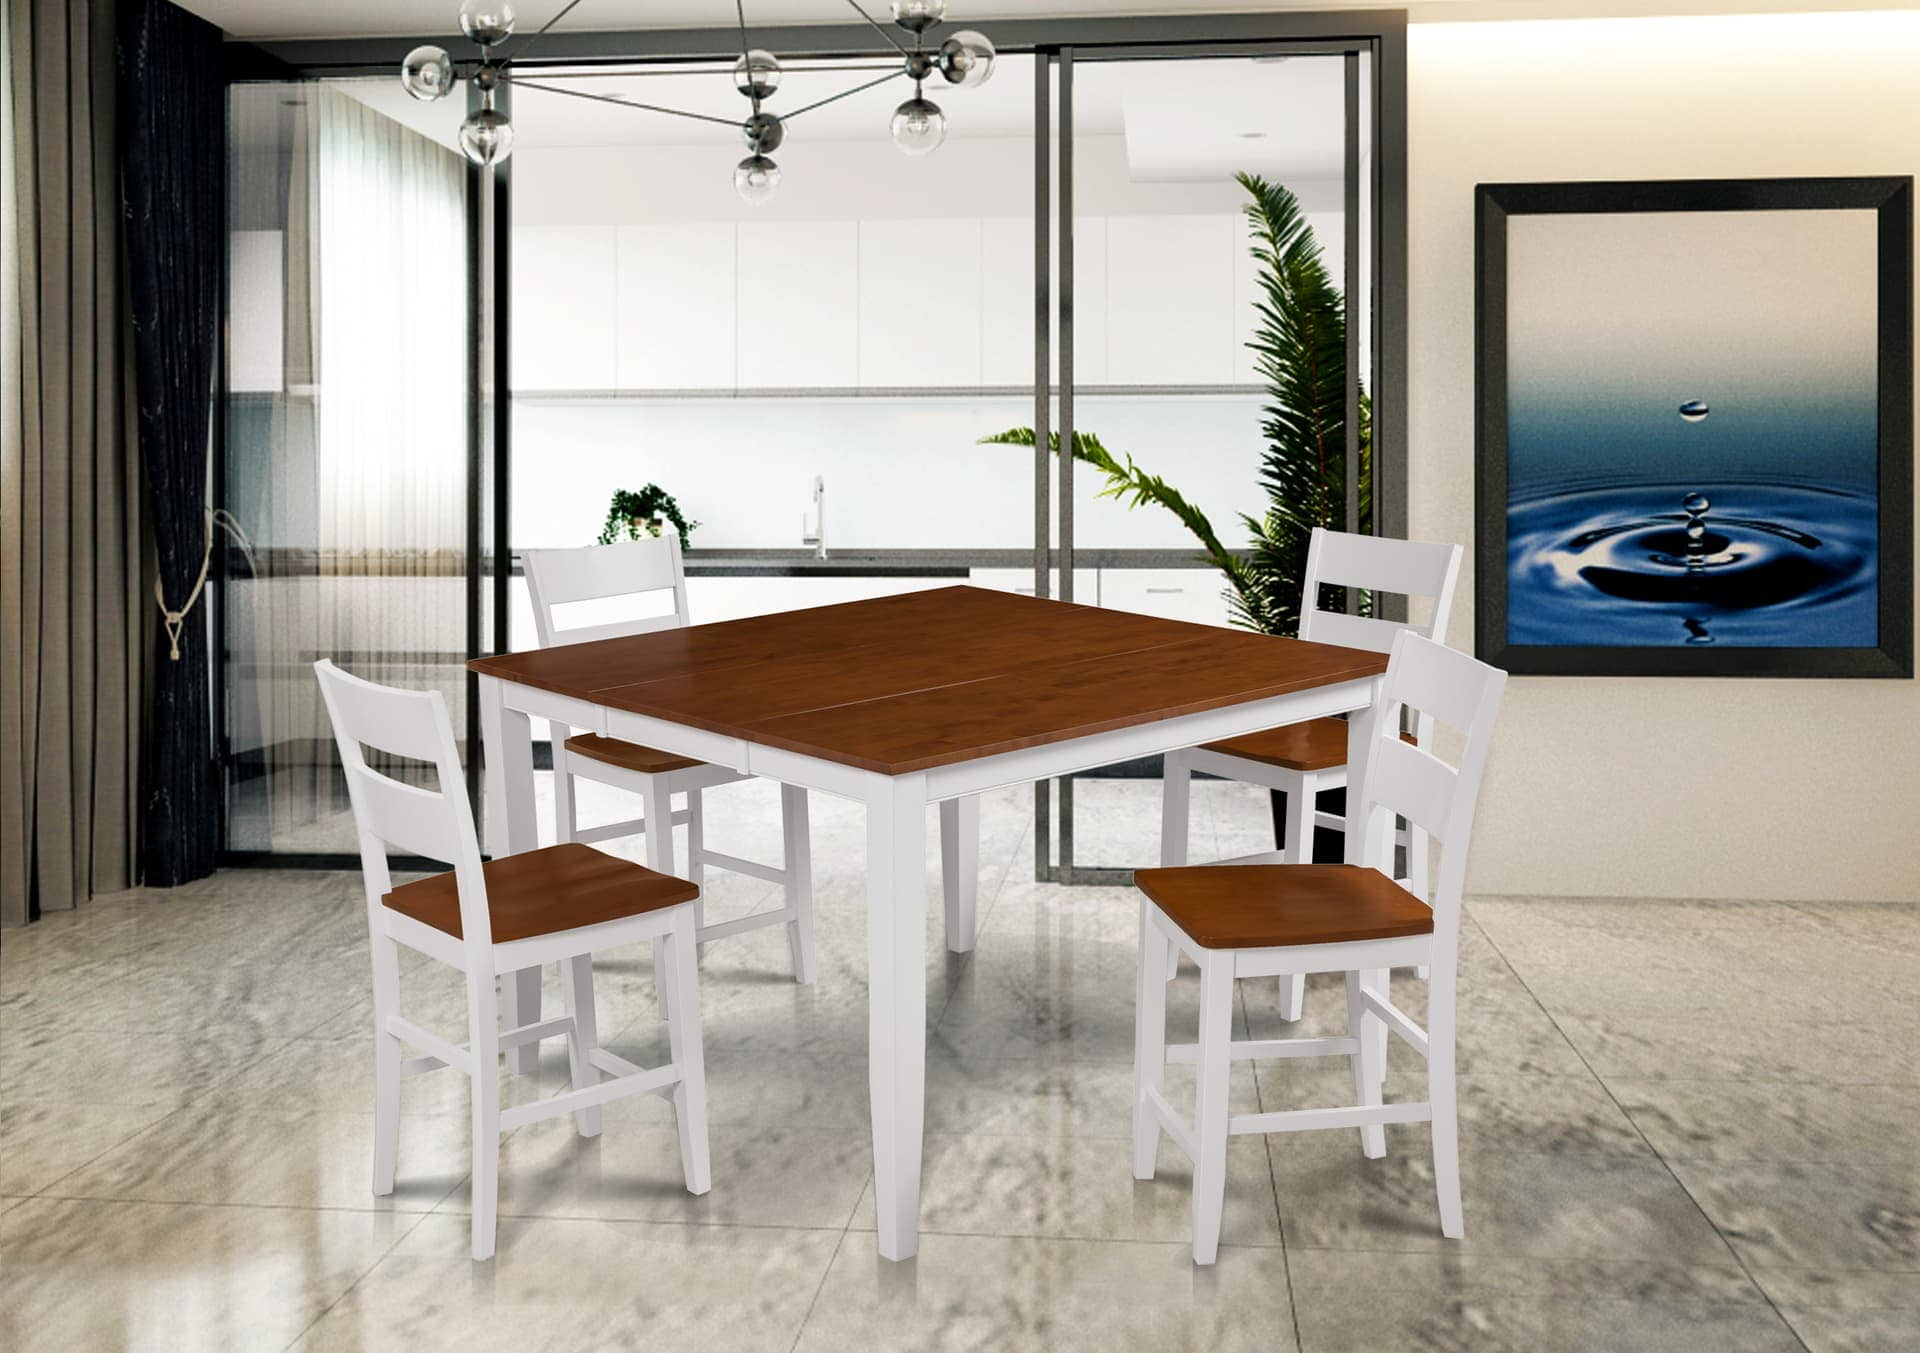 Fullerton Counter Height 5 Piece Dining Set